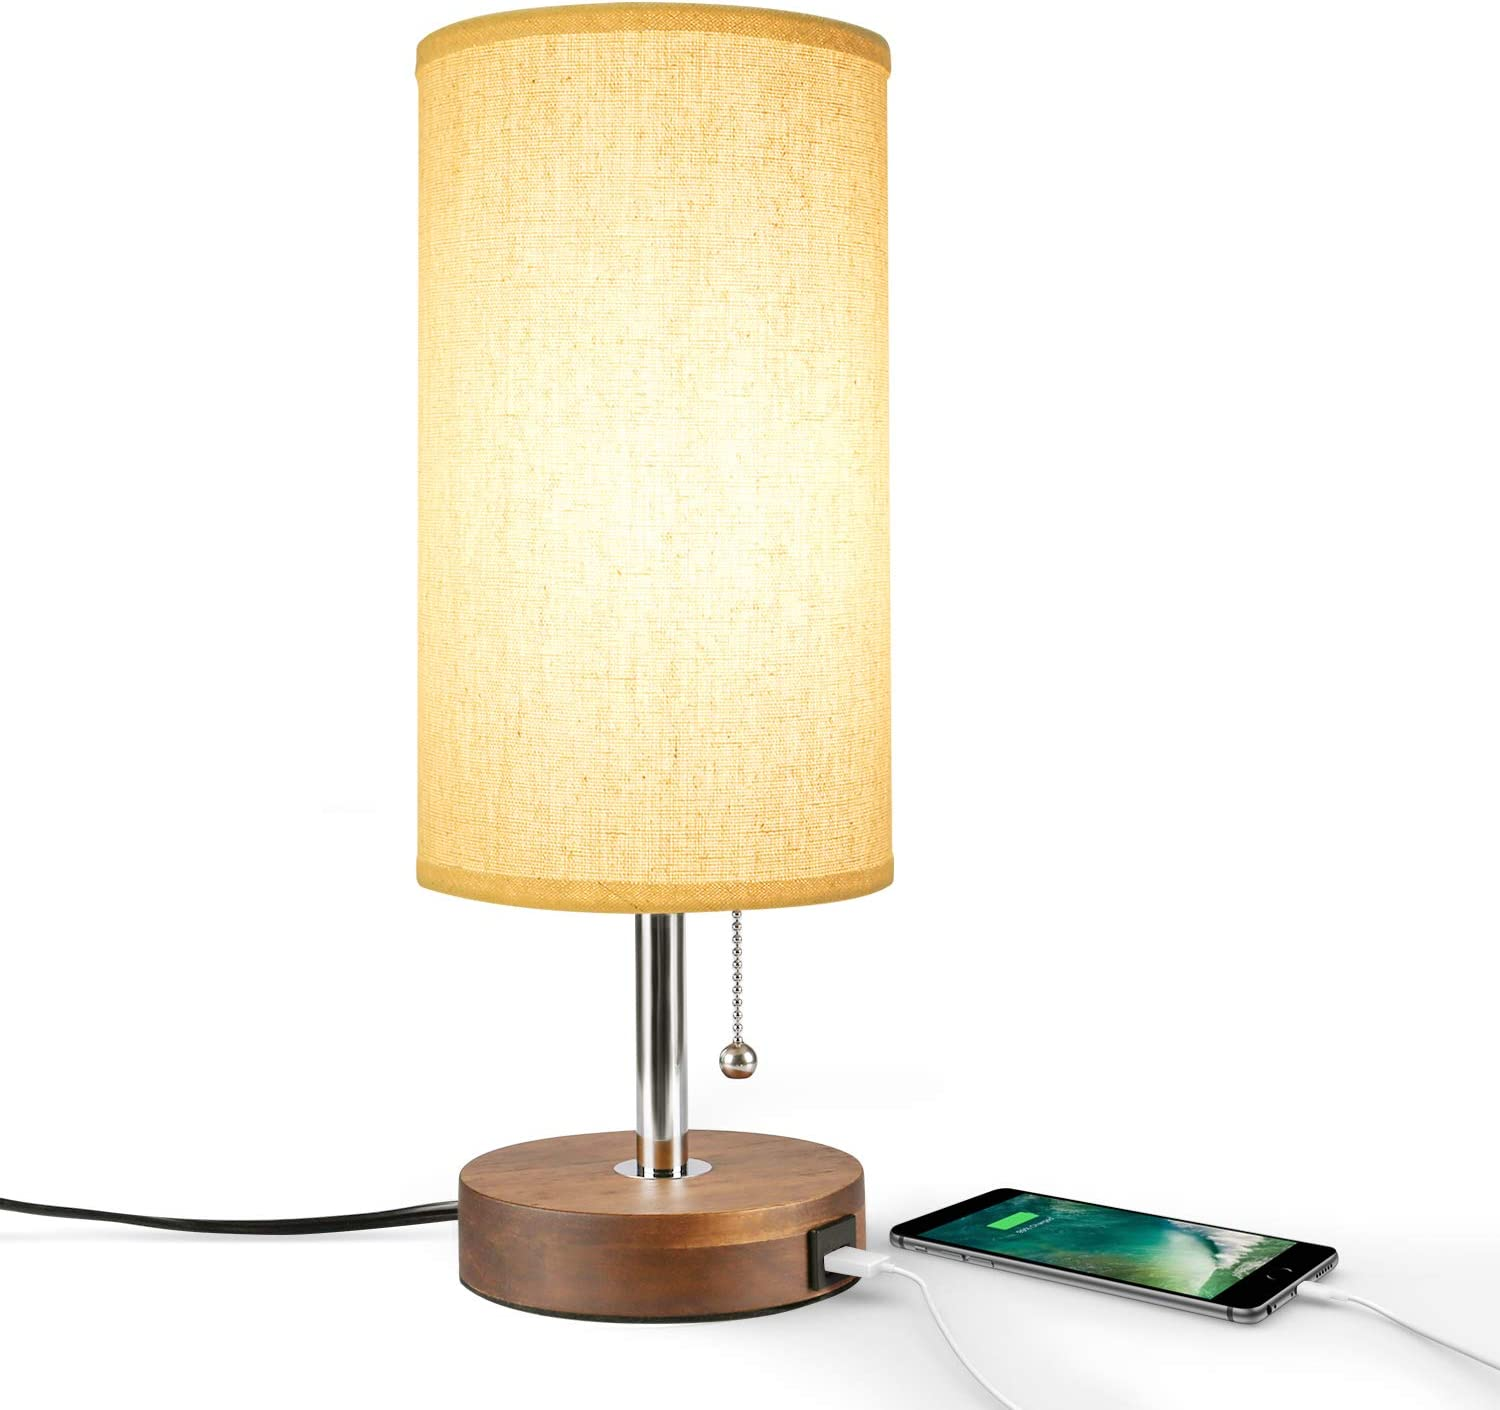 Amazon Com Usb Table Lamp Bedside Desk Lamp Seealle Modern Nightstand Lamp With Usb Charging Port Unique Round Lampshade Convenient Pull Chain Ambient Light For Living Room Bedroom Soild Wood Base Home Improvement